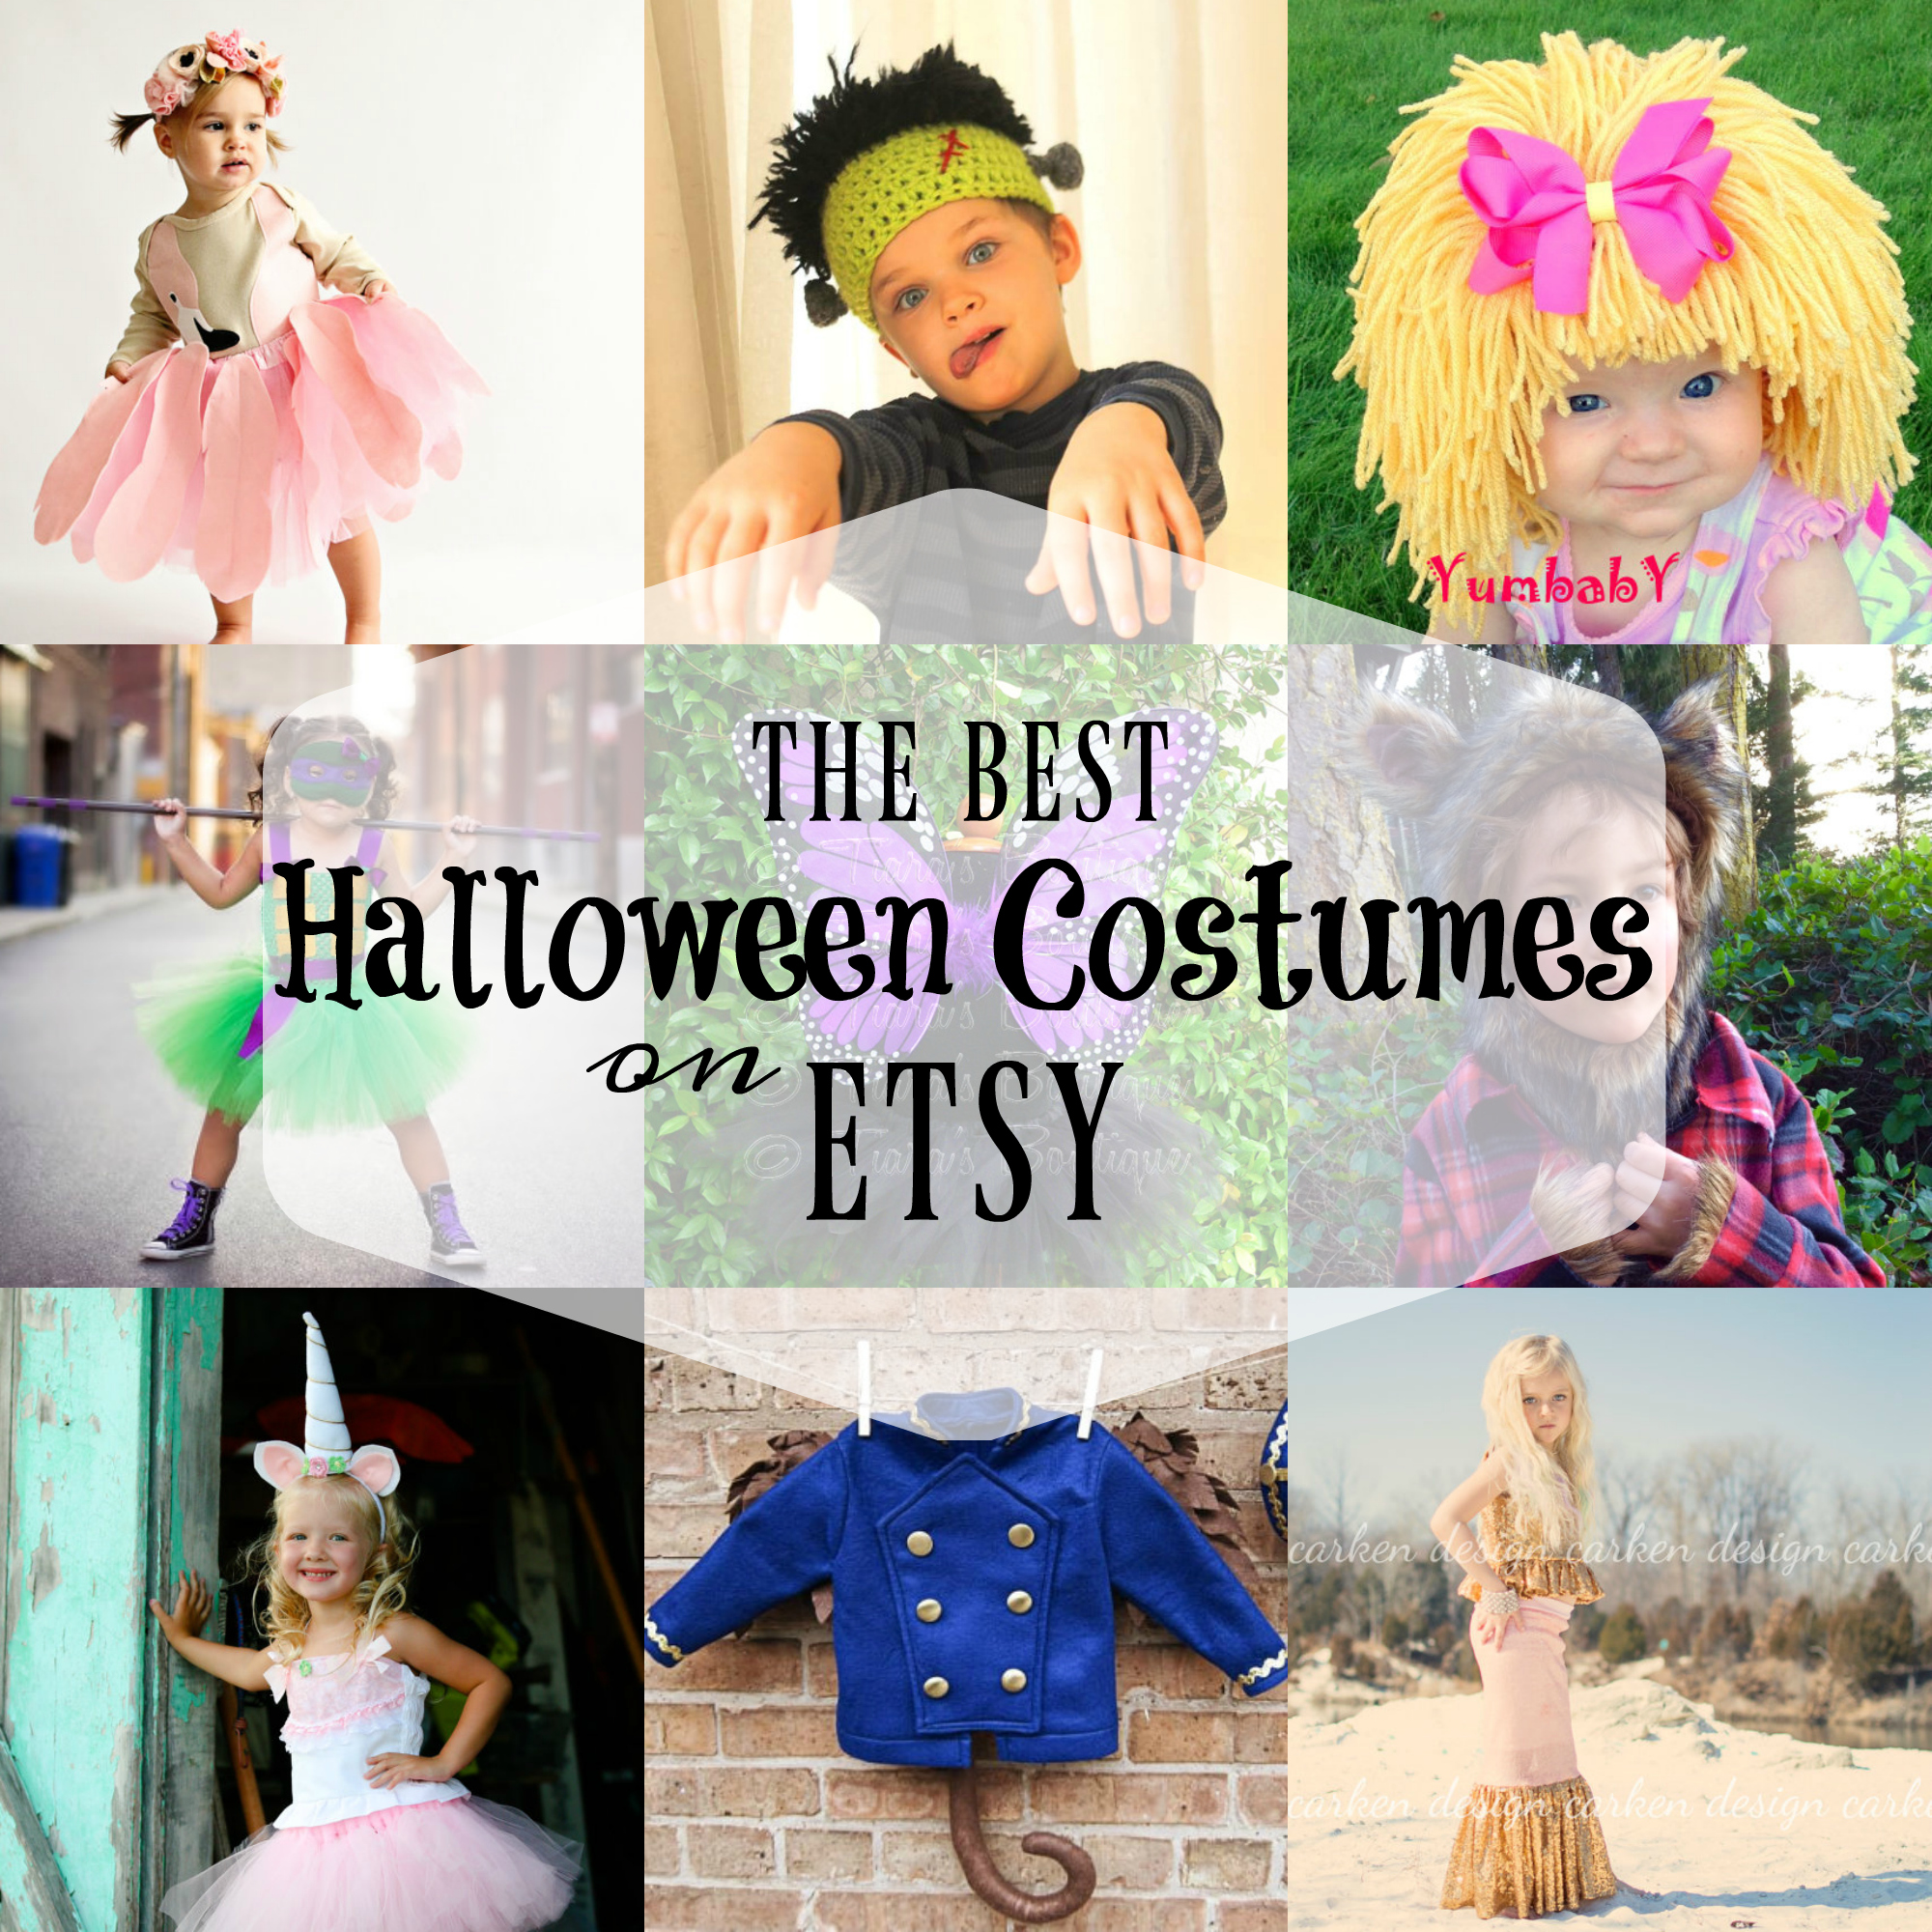 Best Halloween Costumes For Kids on Etsy